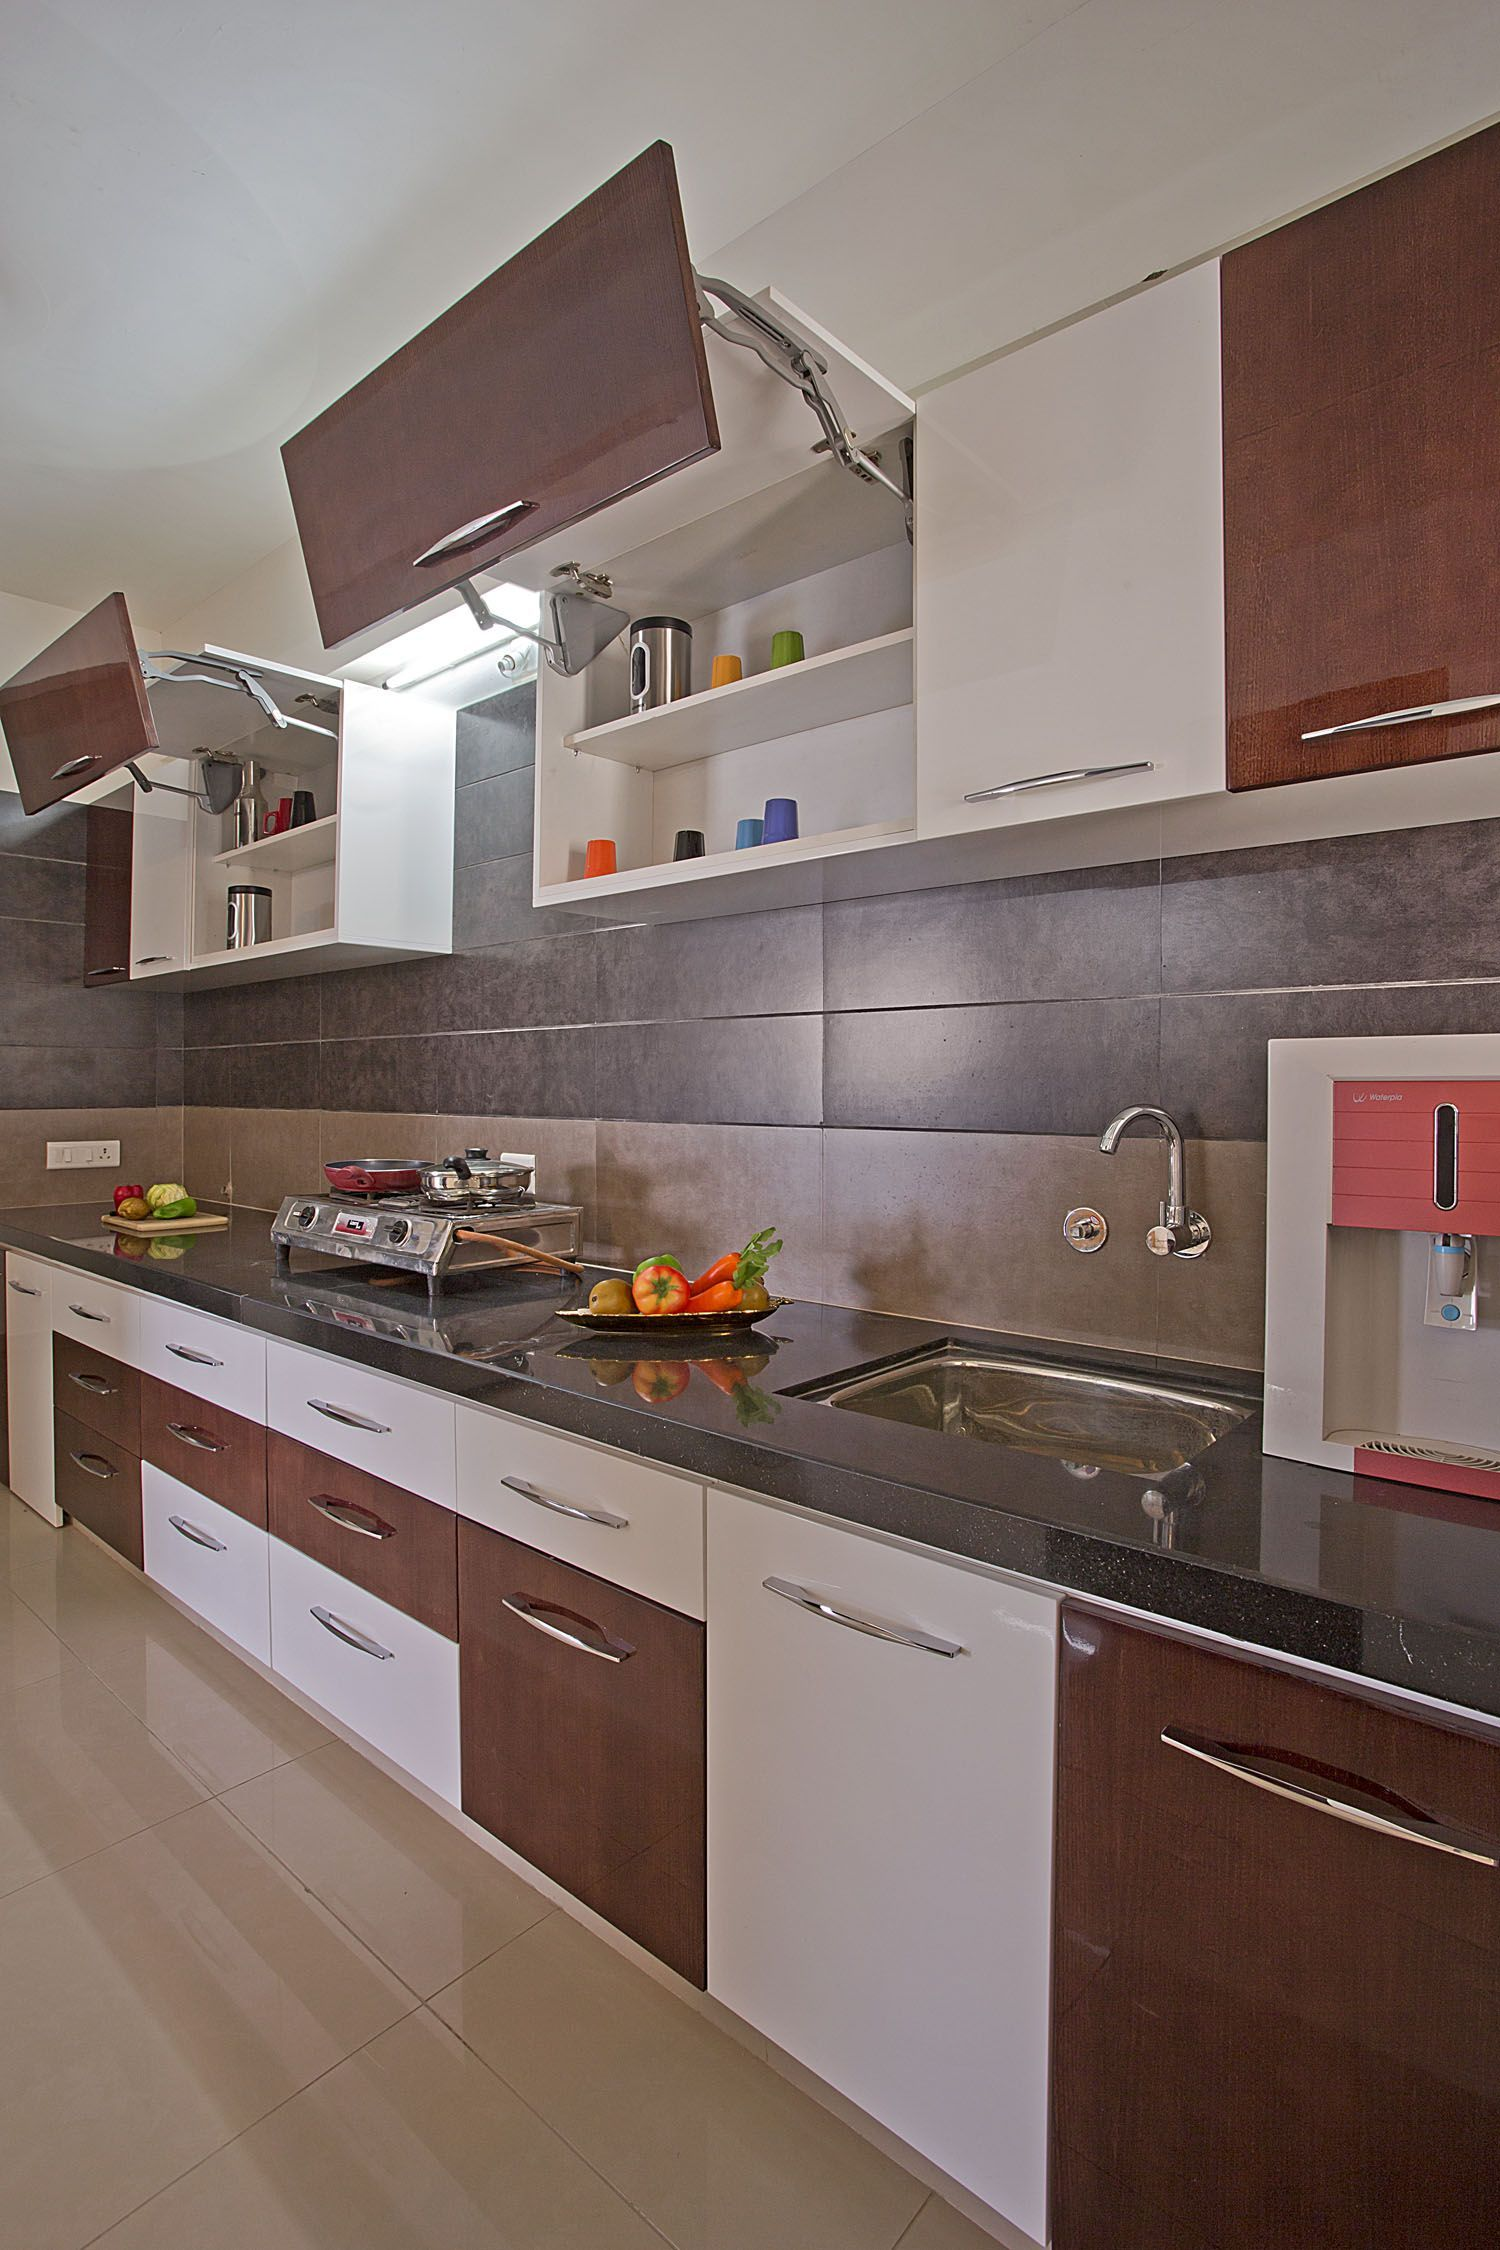 The Kitchen Is Undoubtedly The Heart Of Any Home Owing To The Crucial Role It Plays For T Kitchen Modular Modern Kitchen Cabinet Design Kitchen Cabinet Layout